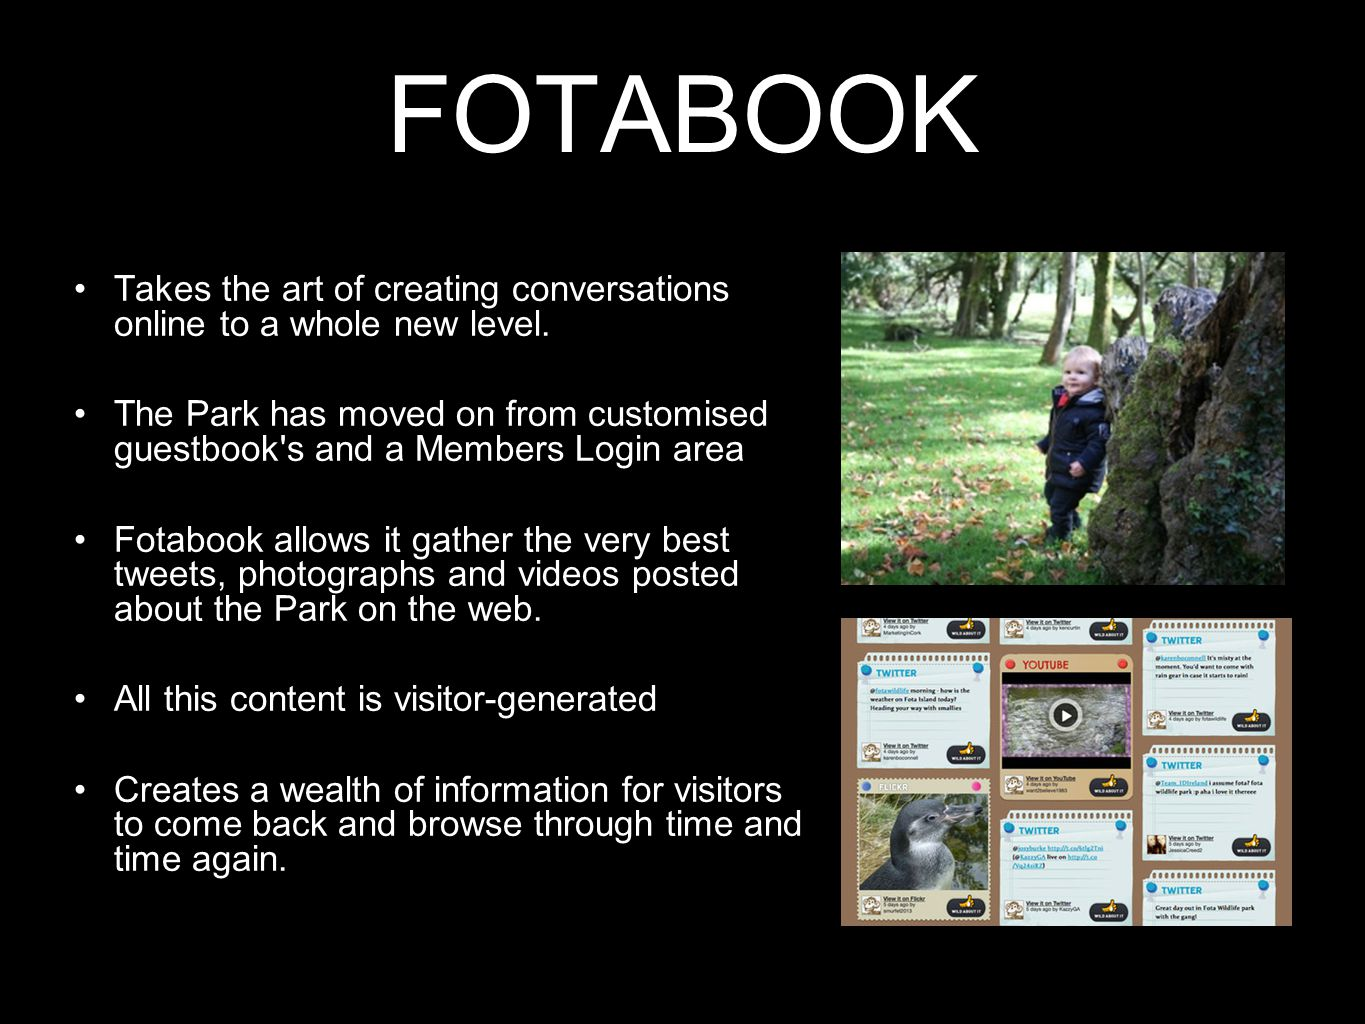 FOTABOOK Takes the art of creating conversations online to a whole new level.